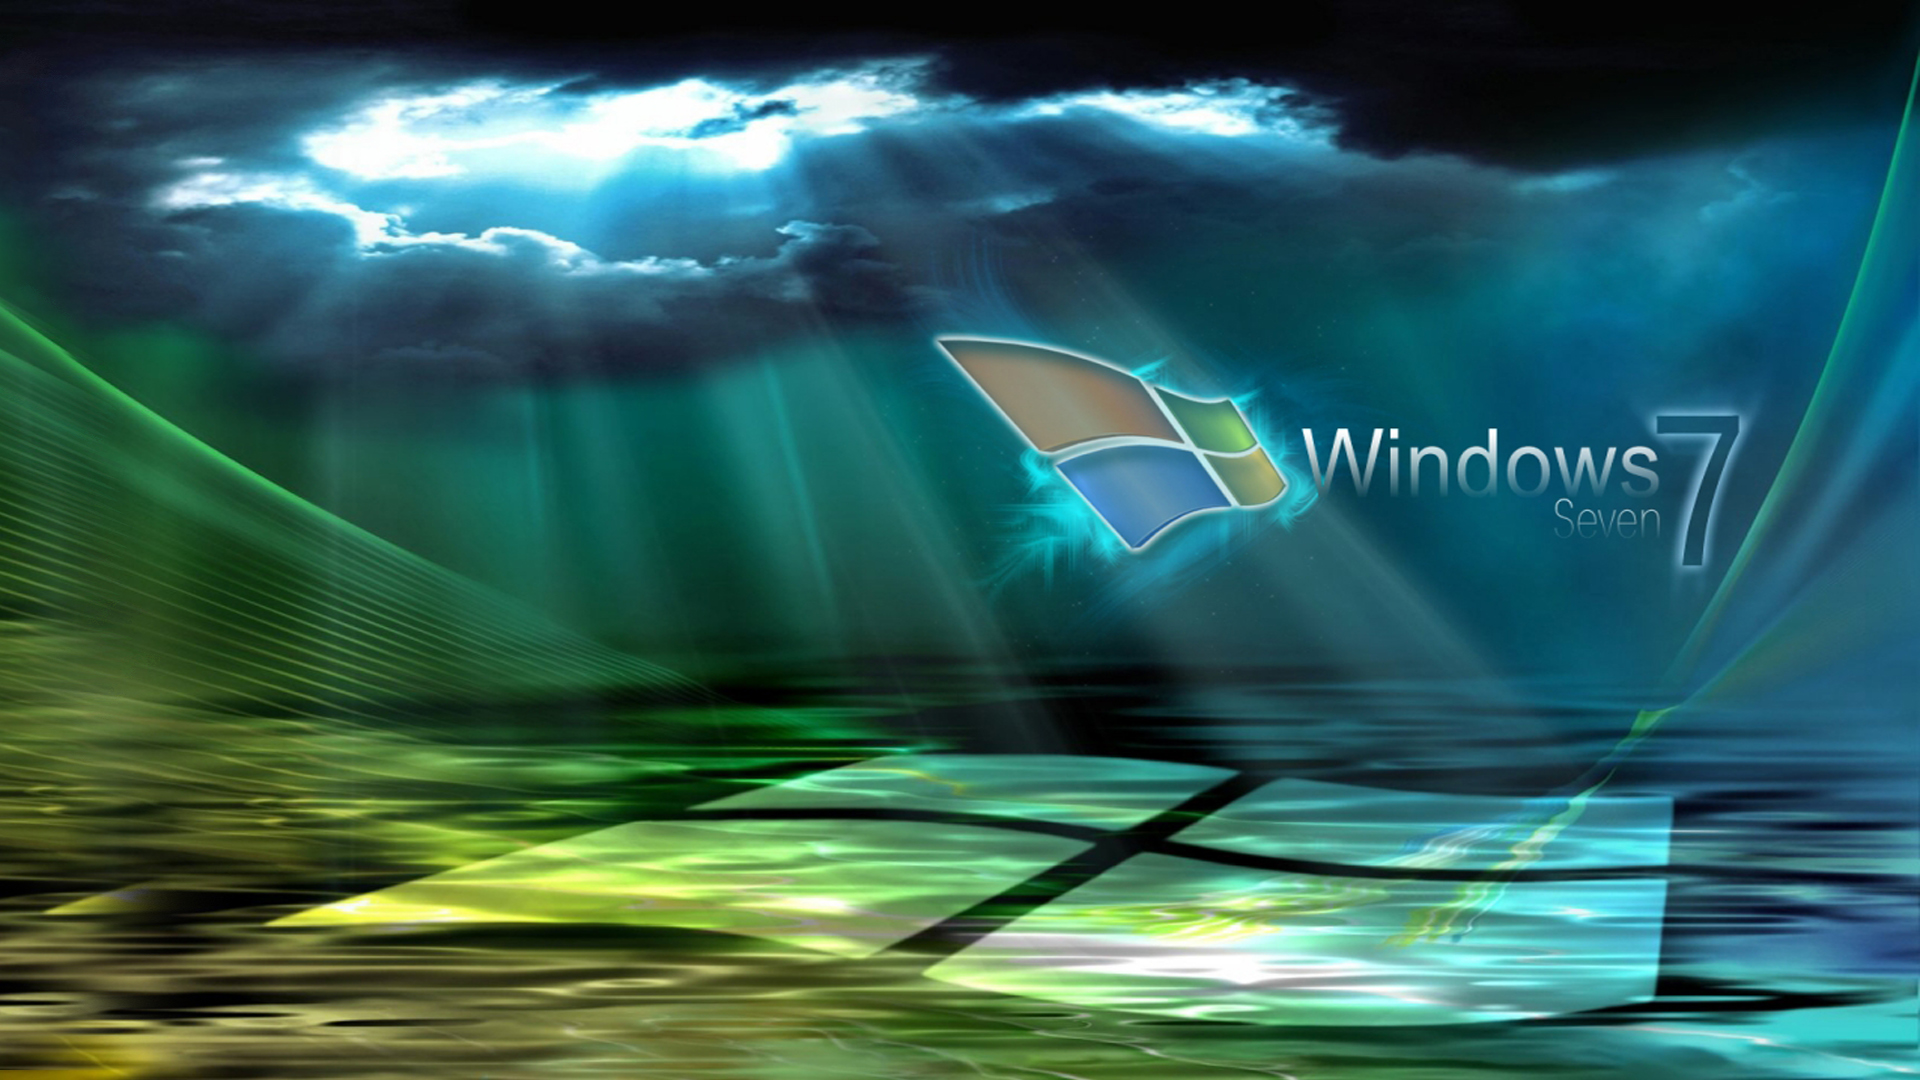 Windows 7 groen blauw